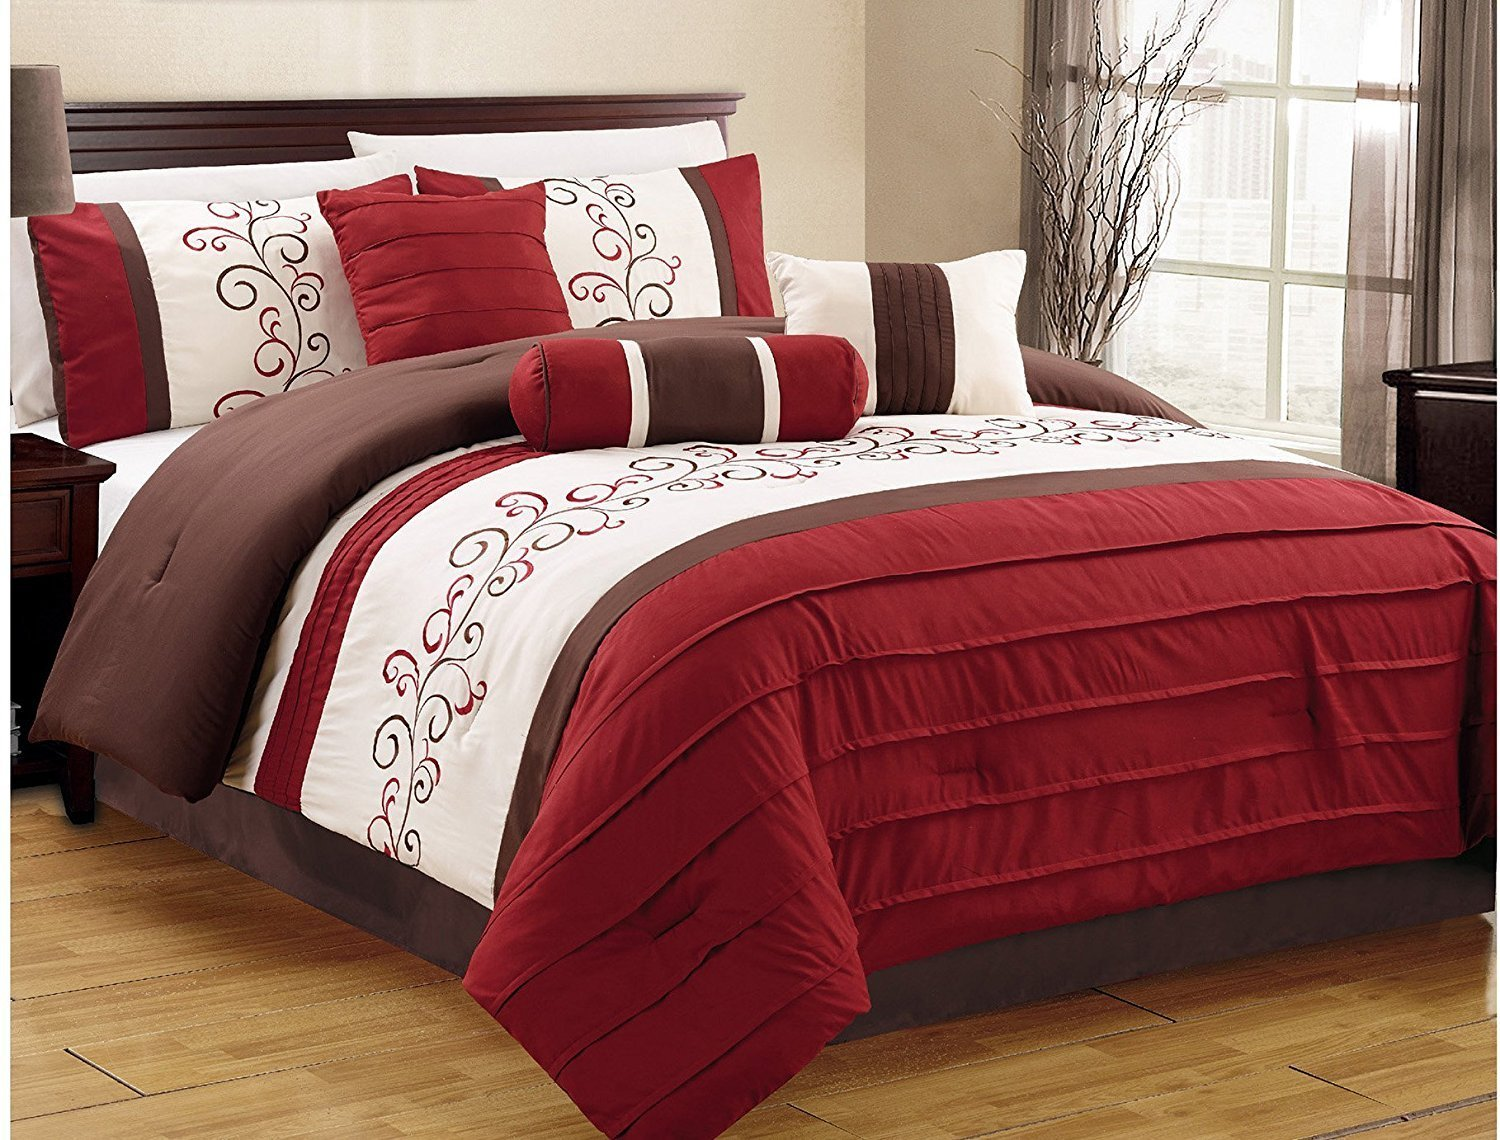 JBFF 7 Piece Luxury Embroidery Bed in bag Microfiber Comforter Set , King, Burgundy/Coffee